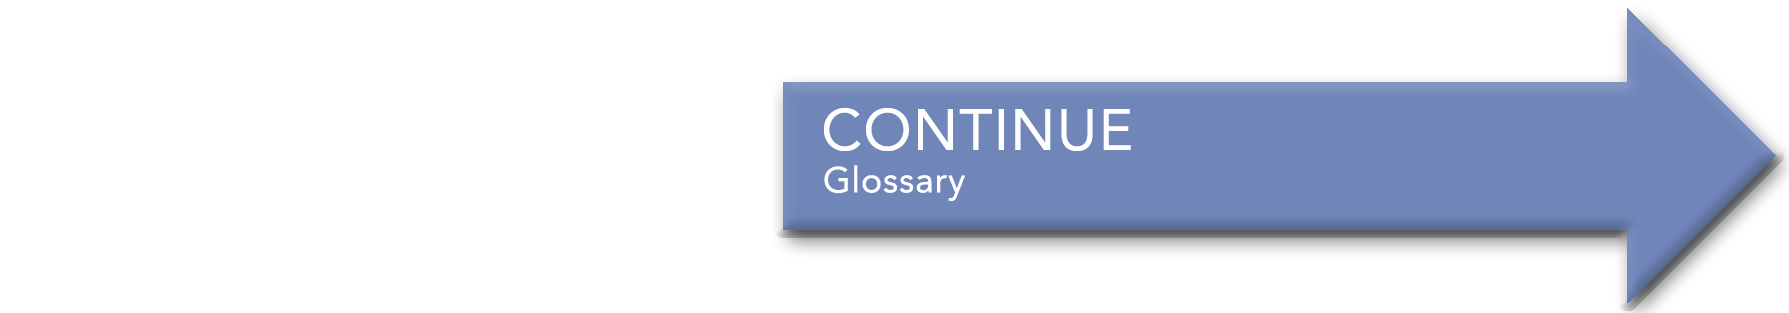 Continue to Glossary